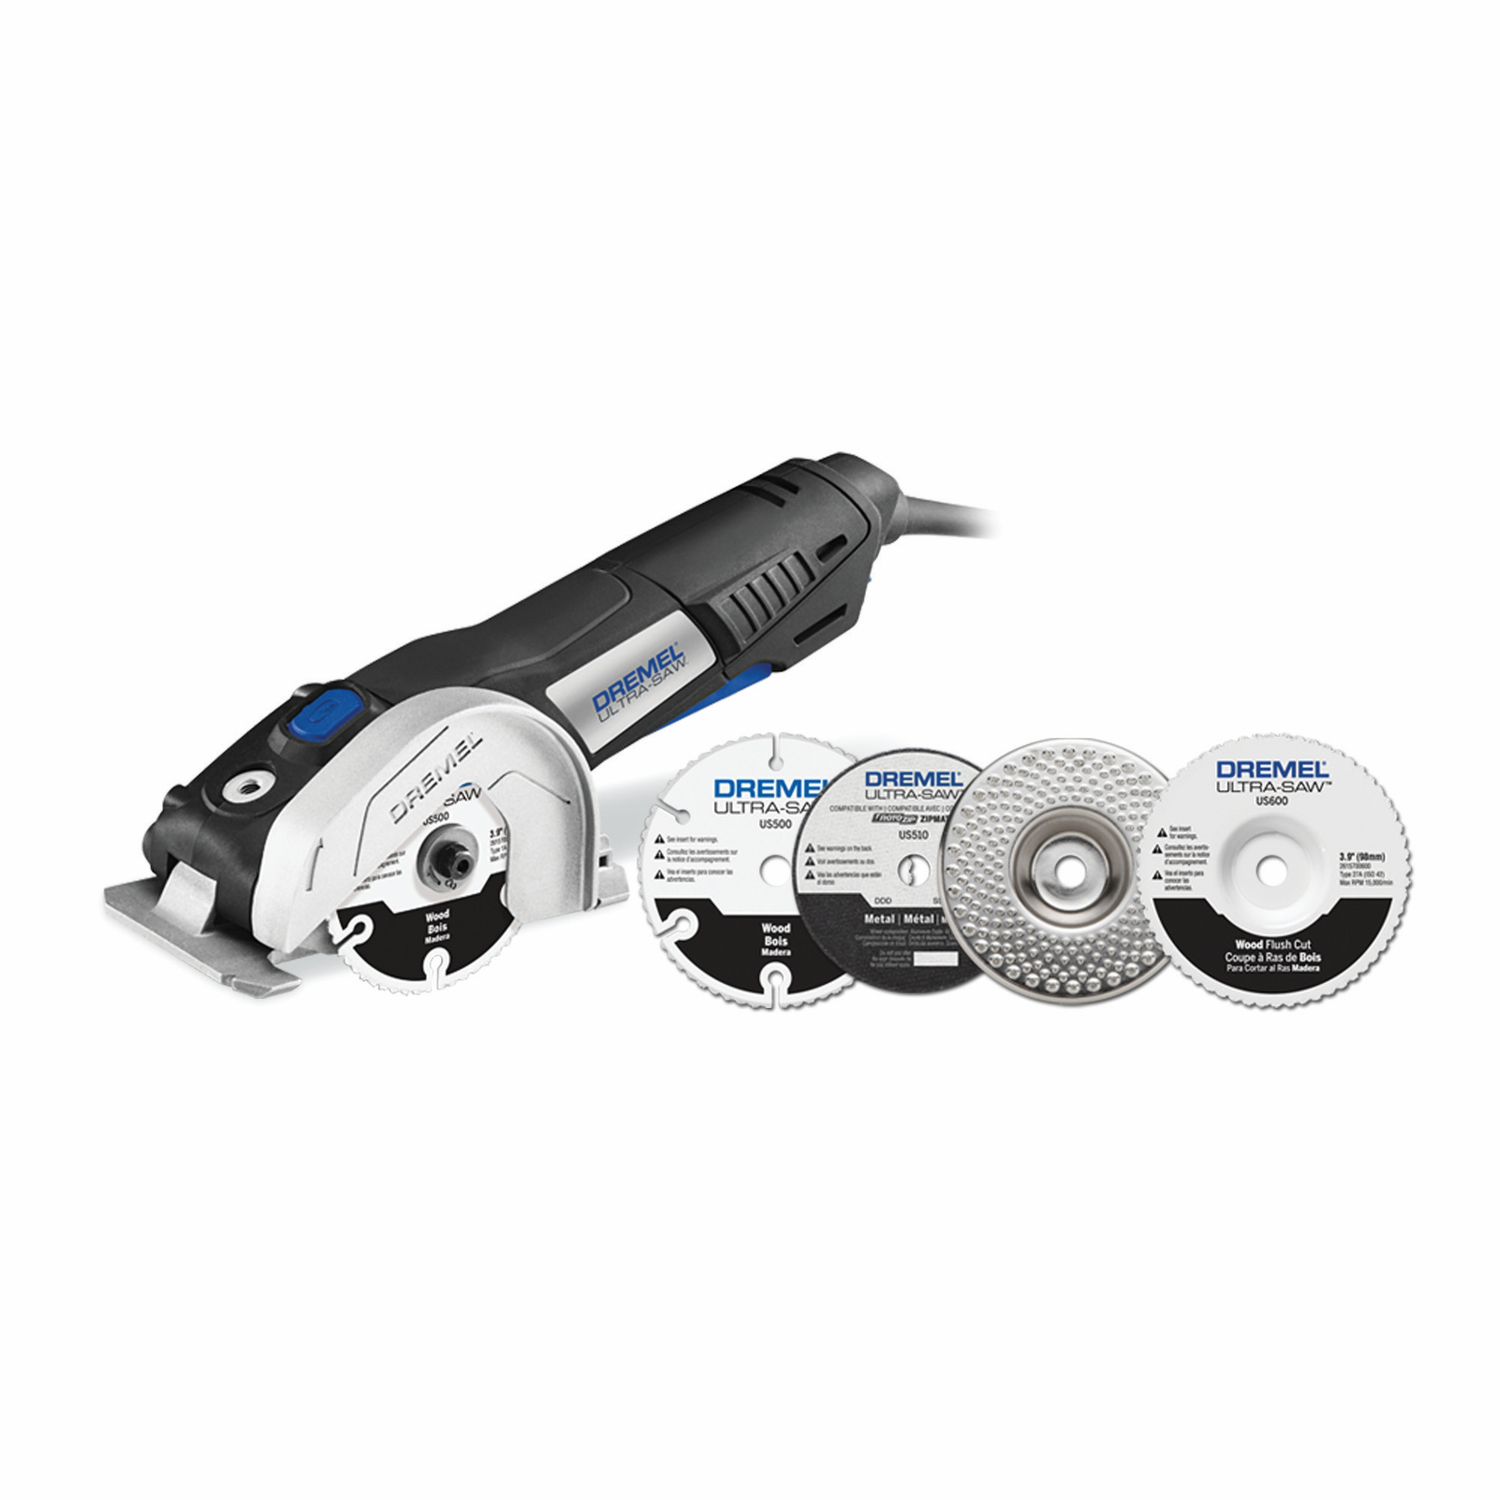 Dremel  Ultra-Saw  3-1/4 in. 120 volt 7.5 amps 120 volt Kit Circular Saw  13000 rpm Corded